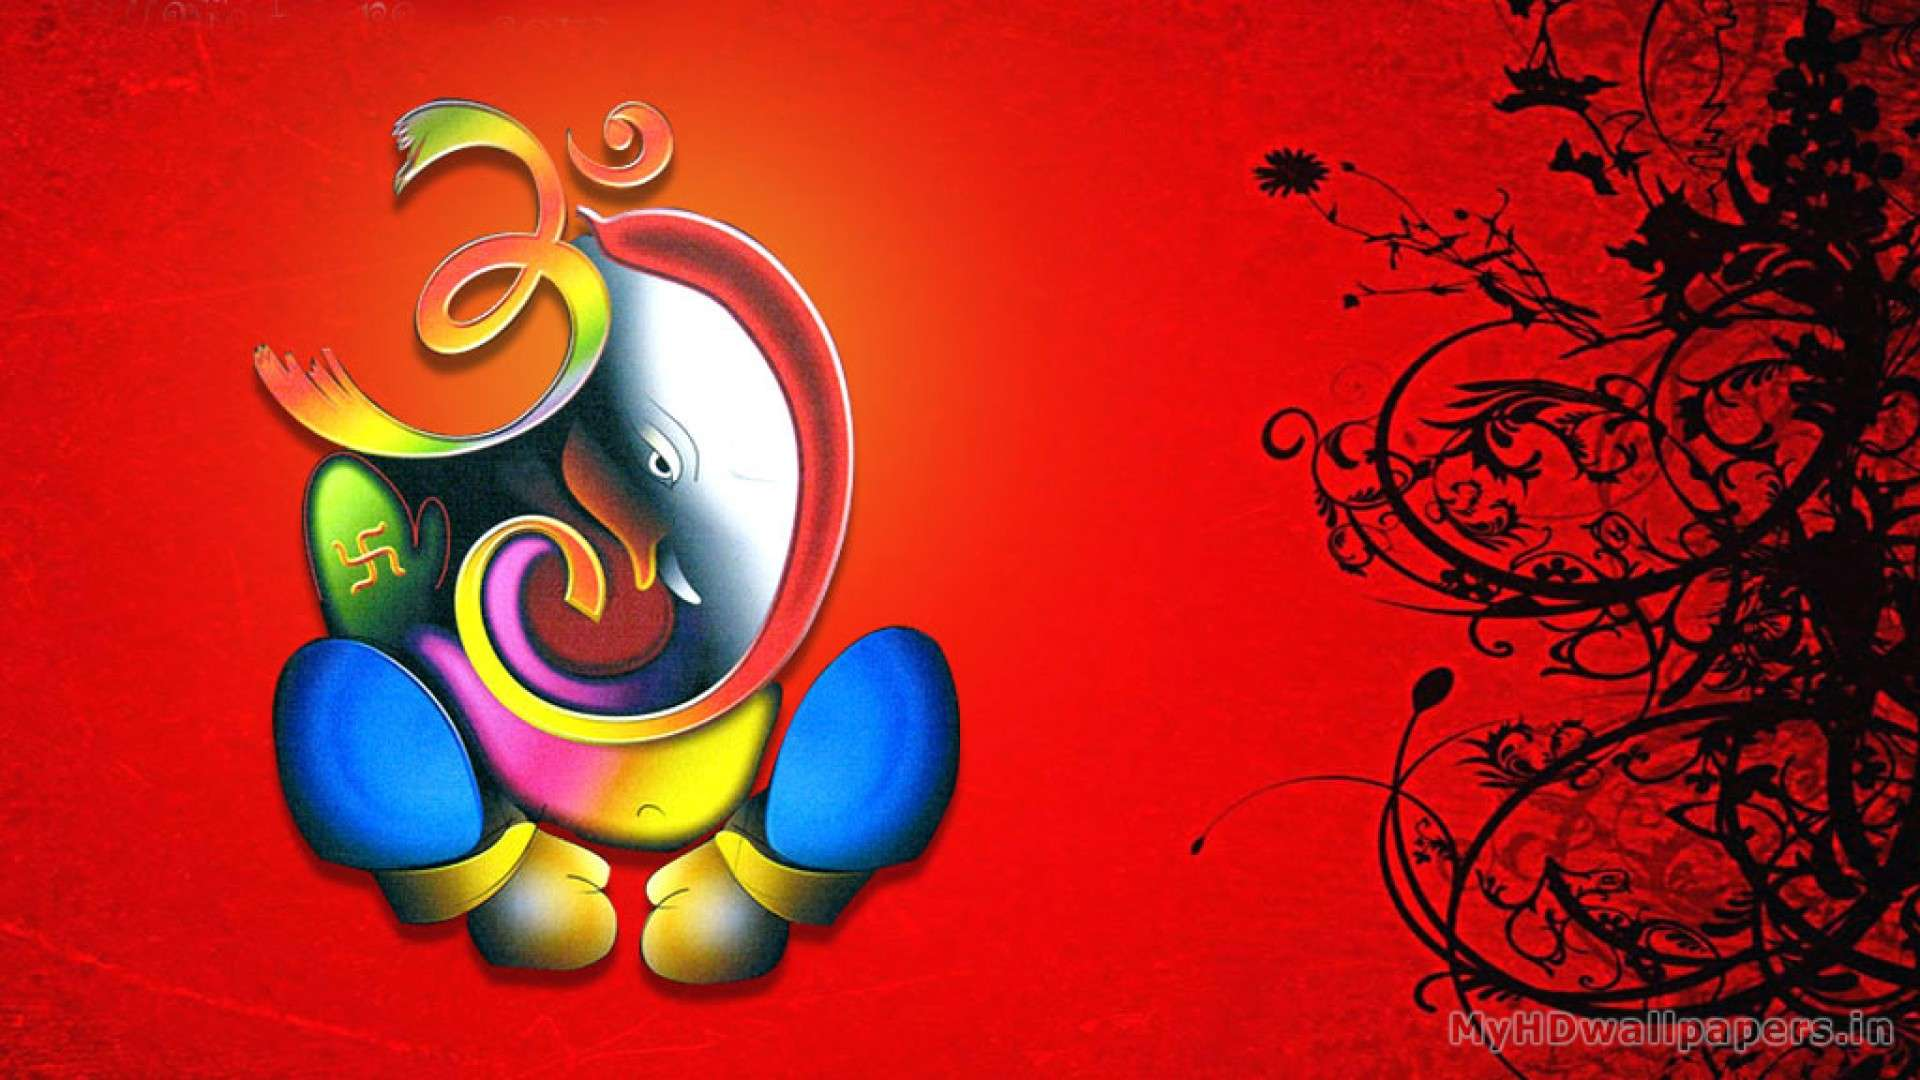 lord ganesha wallpaper computer background - photo #16